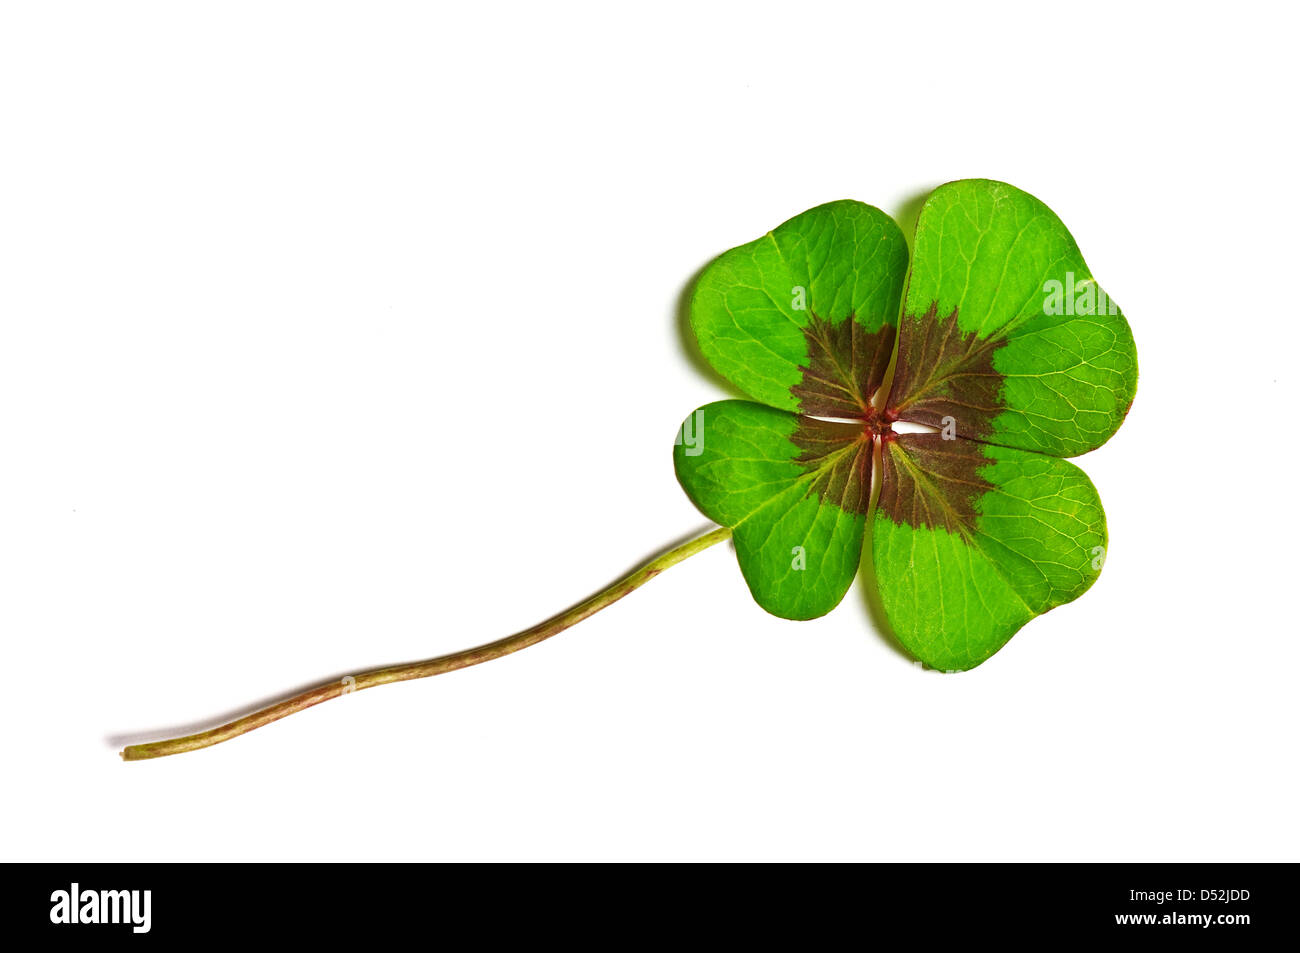 green clover isolated on white - Stock Image